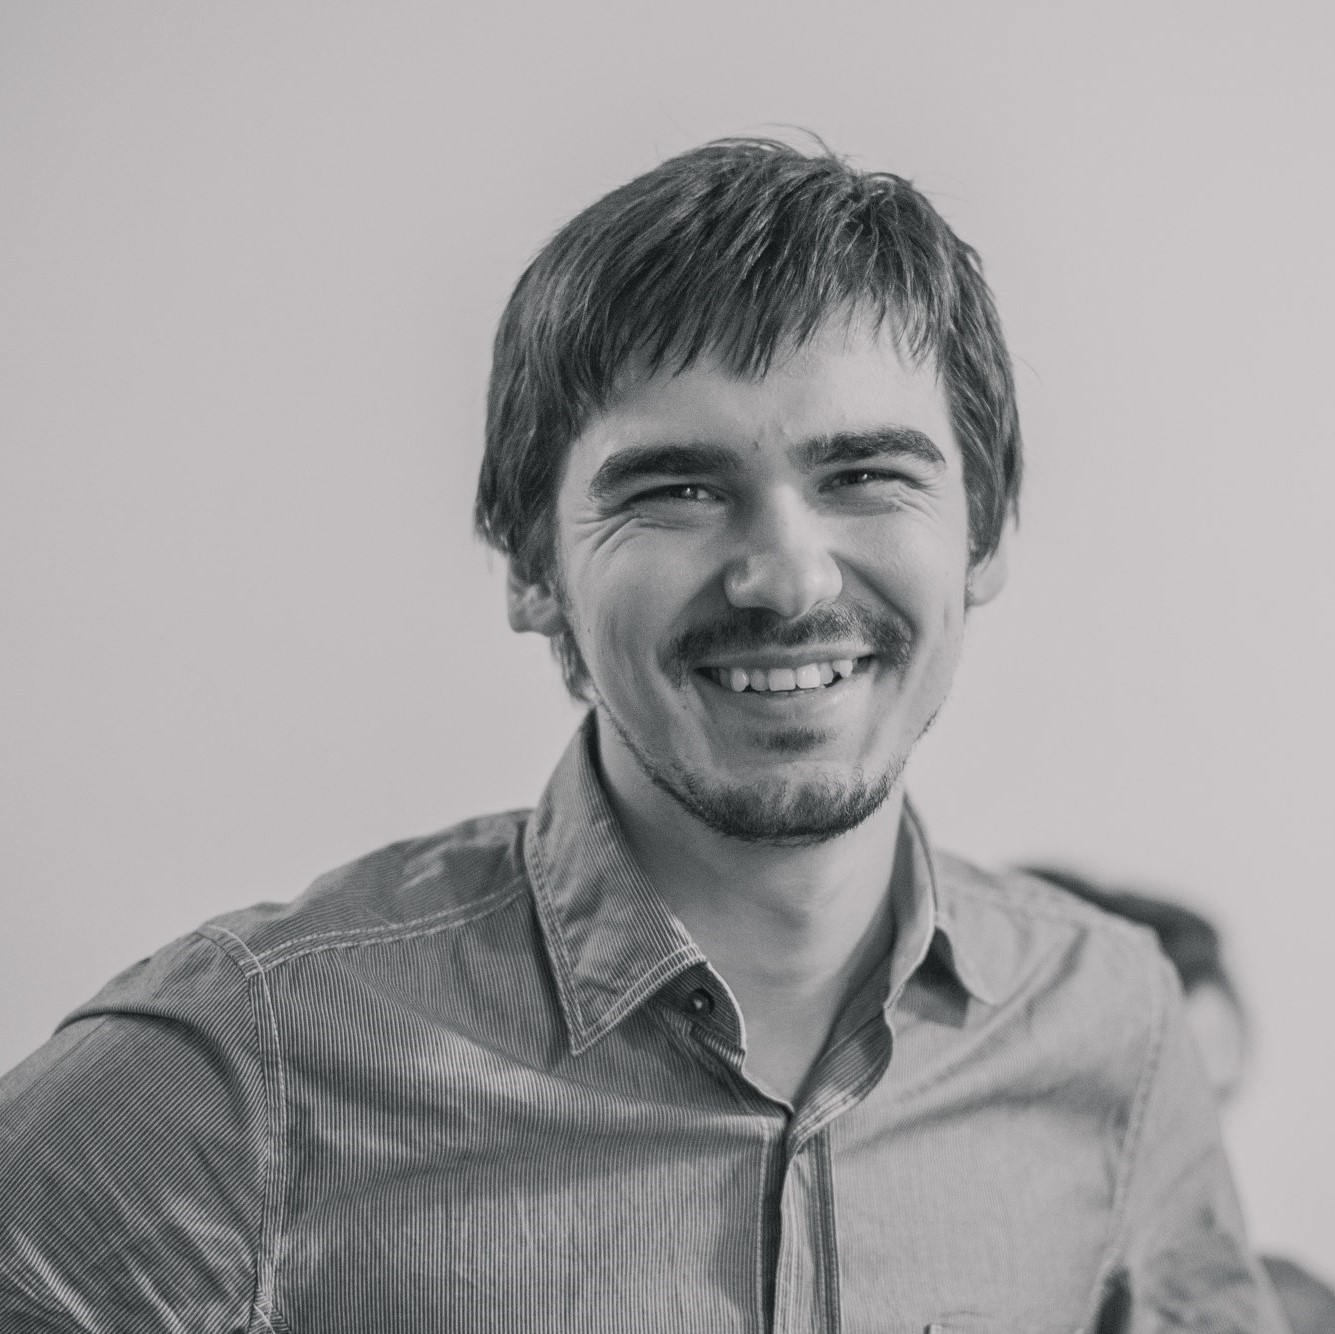 Drupal CI/CD from dev to prod with Gitlab, Kubernetes and Helm